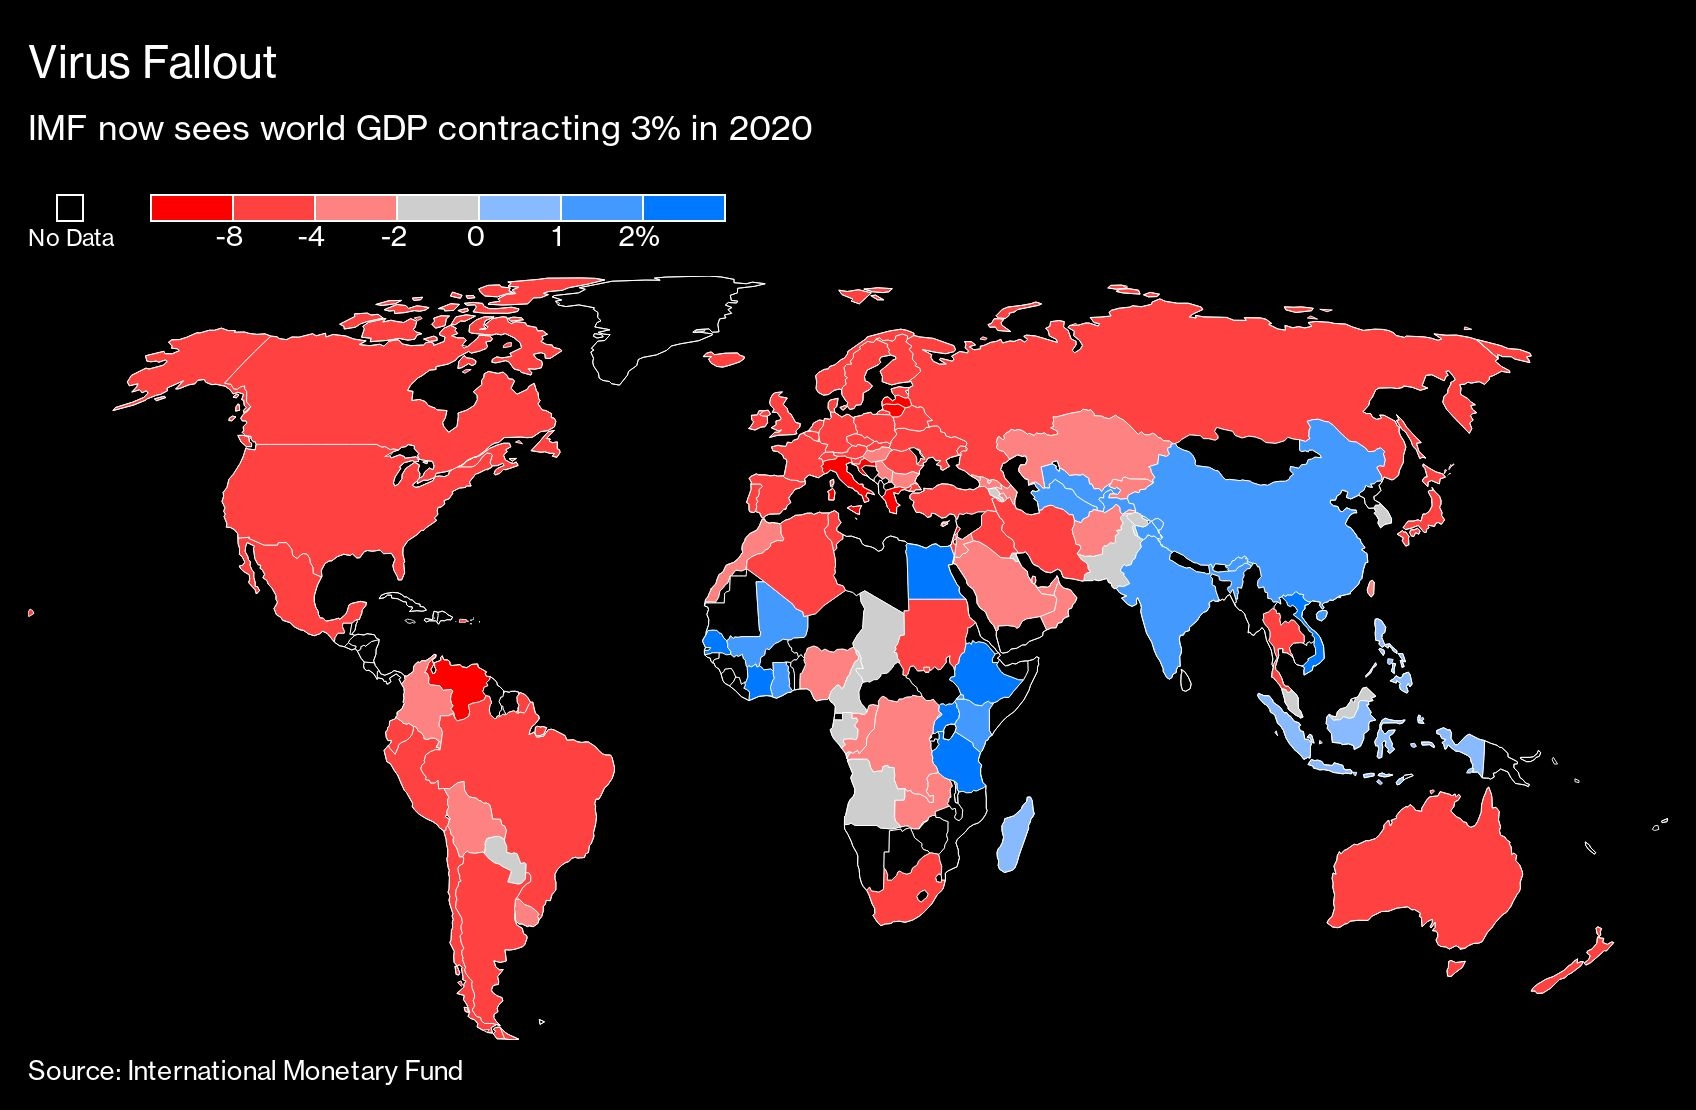 Fate of Global Economy Rests More Than Ever on Finding Vaccine – BNNBloomberg.ca